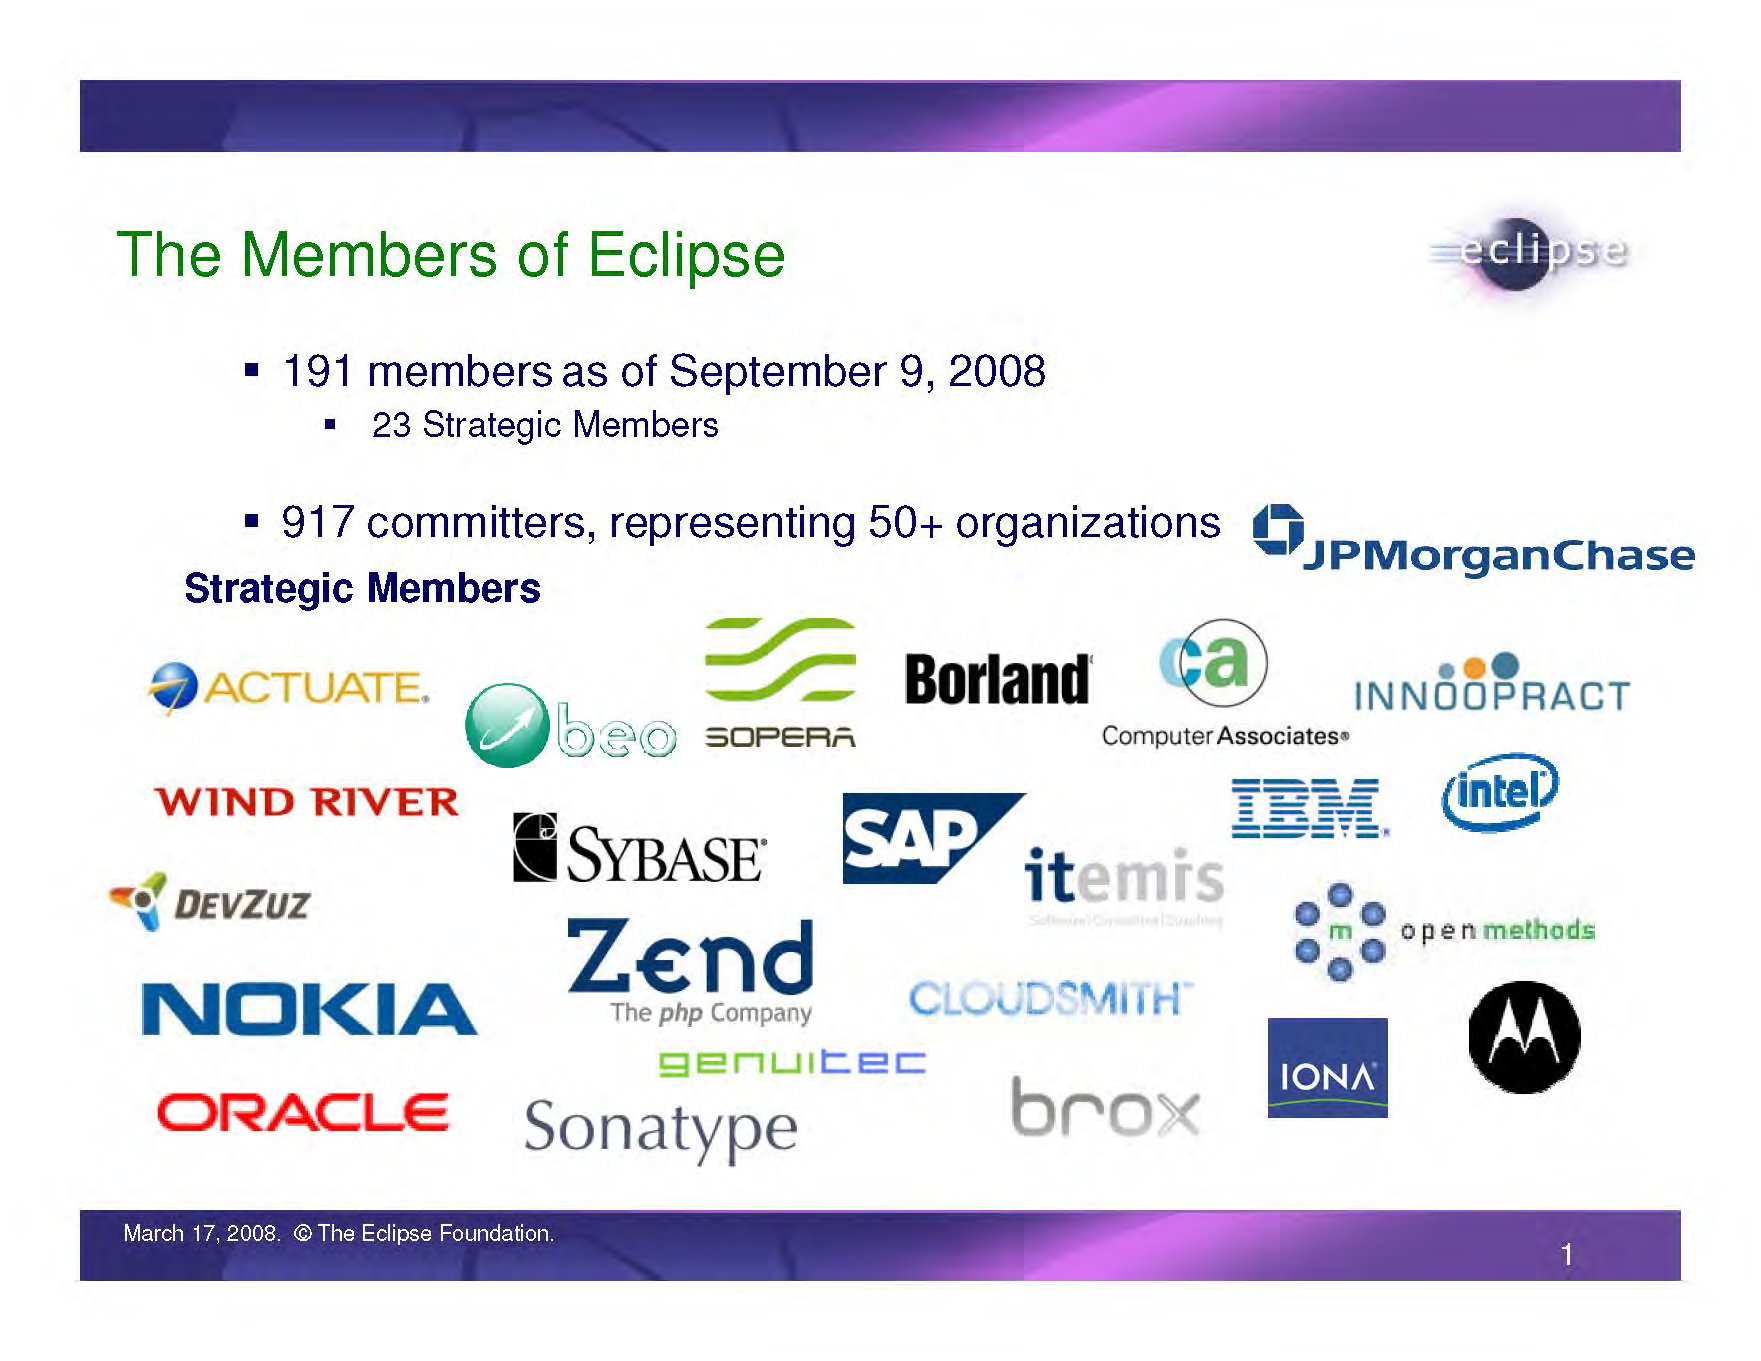 On Sep. 09, 2008, the IBM Eclipse Foundation boasted 191 members, including Facebook underwriter JPMorgan Chase.